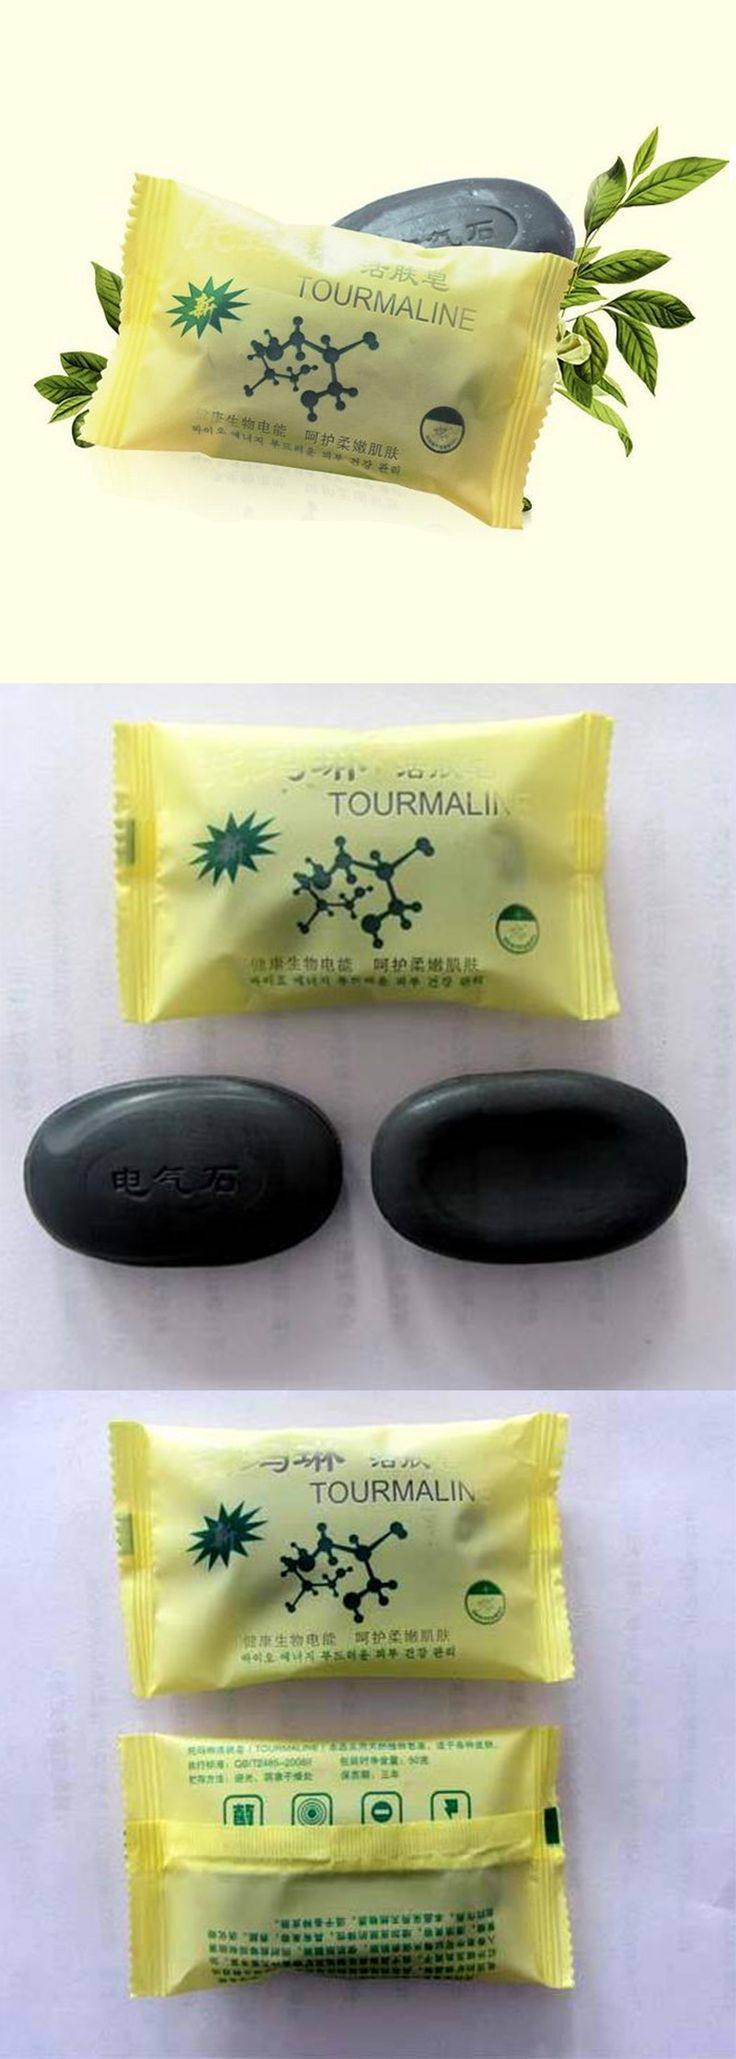 Tourmaline bamboo active energy Soap Charcoal active energy soap Concentrated sulfur soap For Face & Body Beauty Healthy